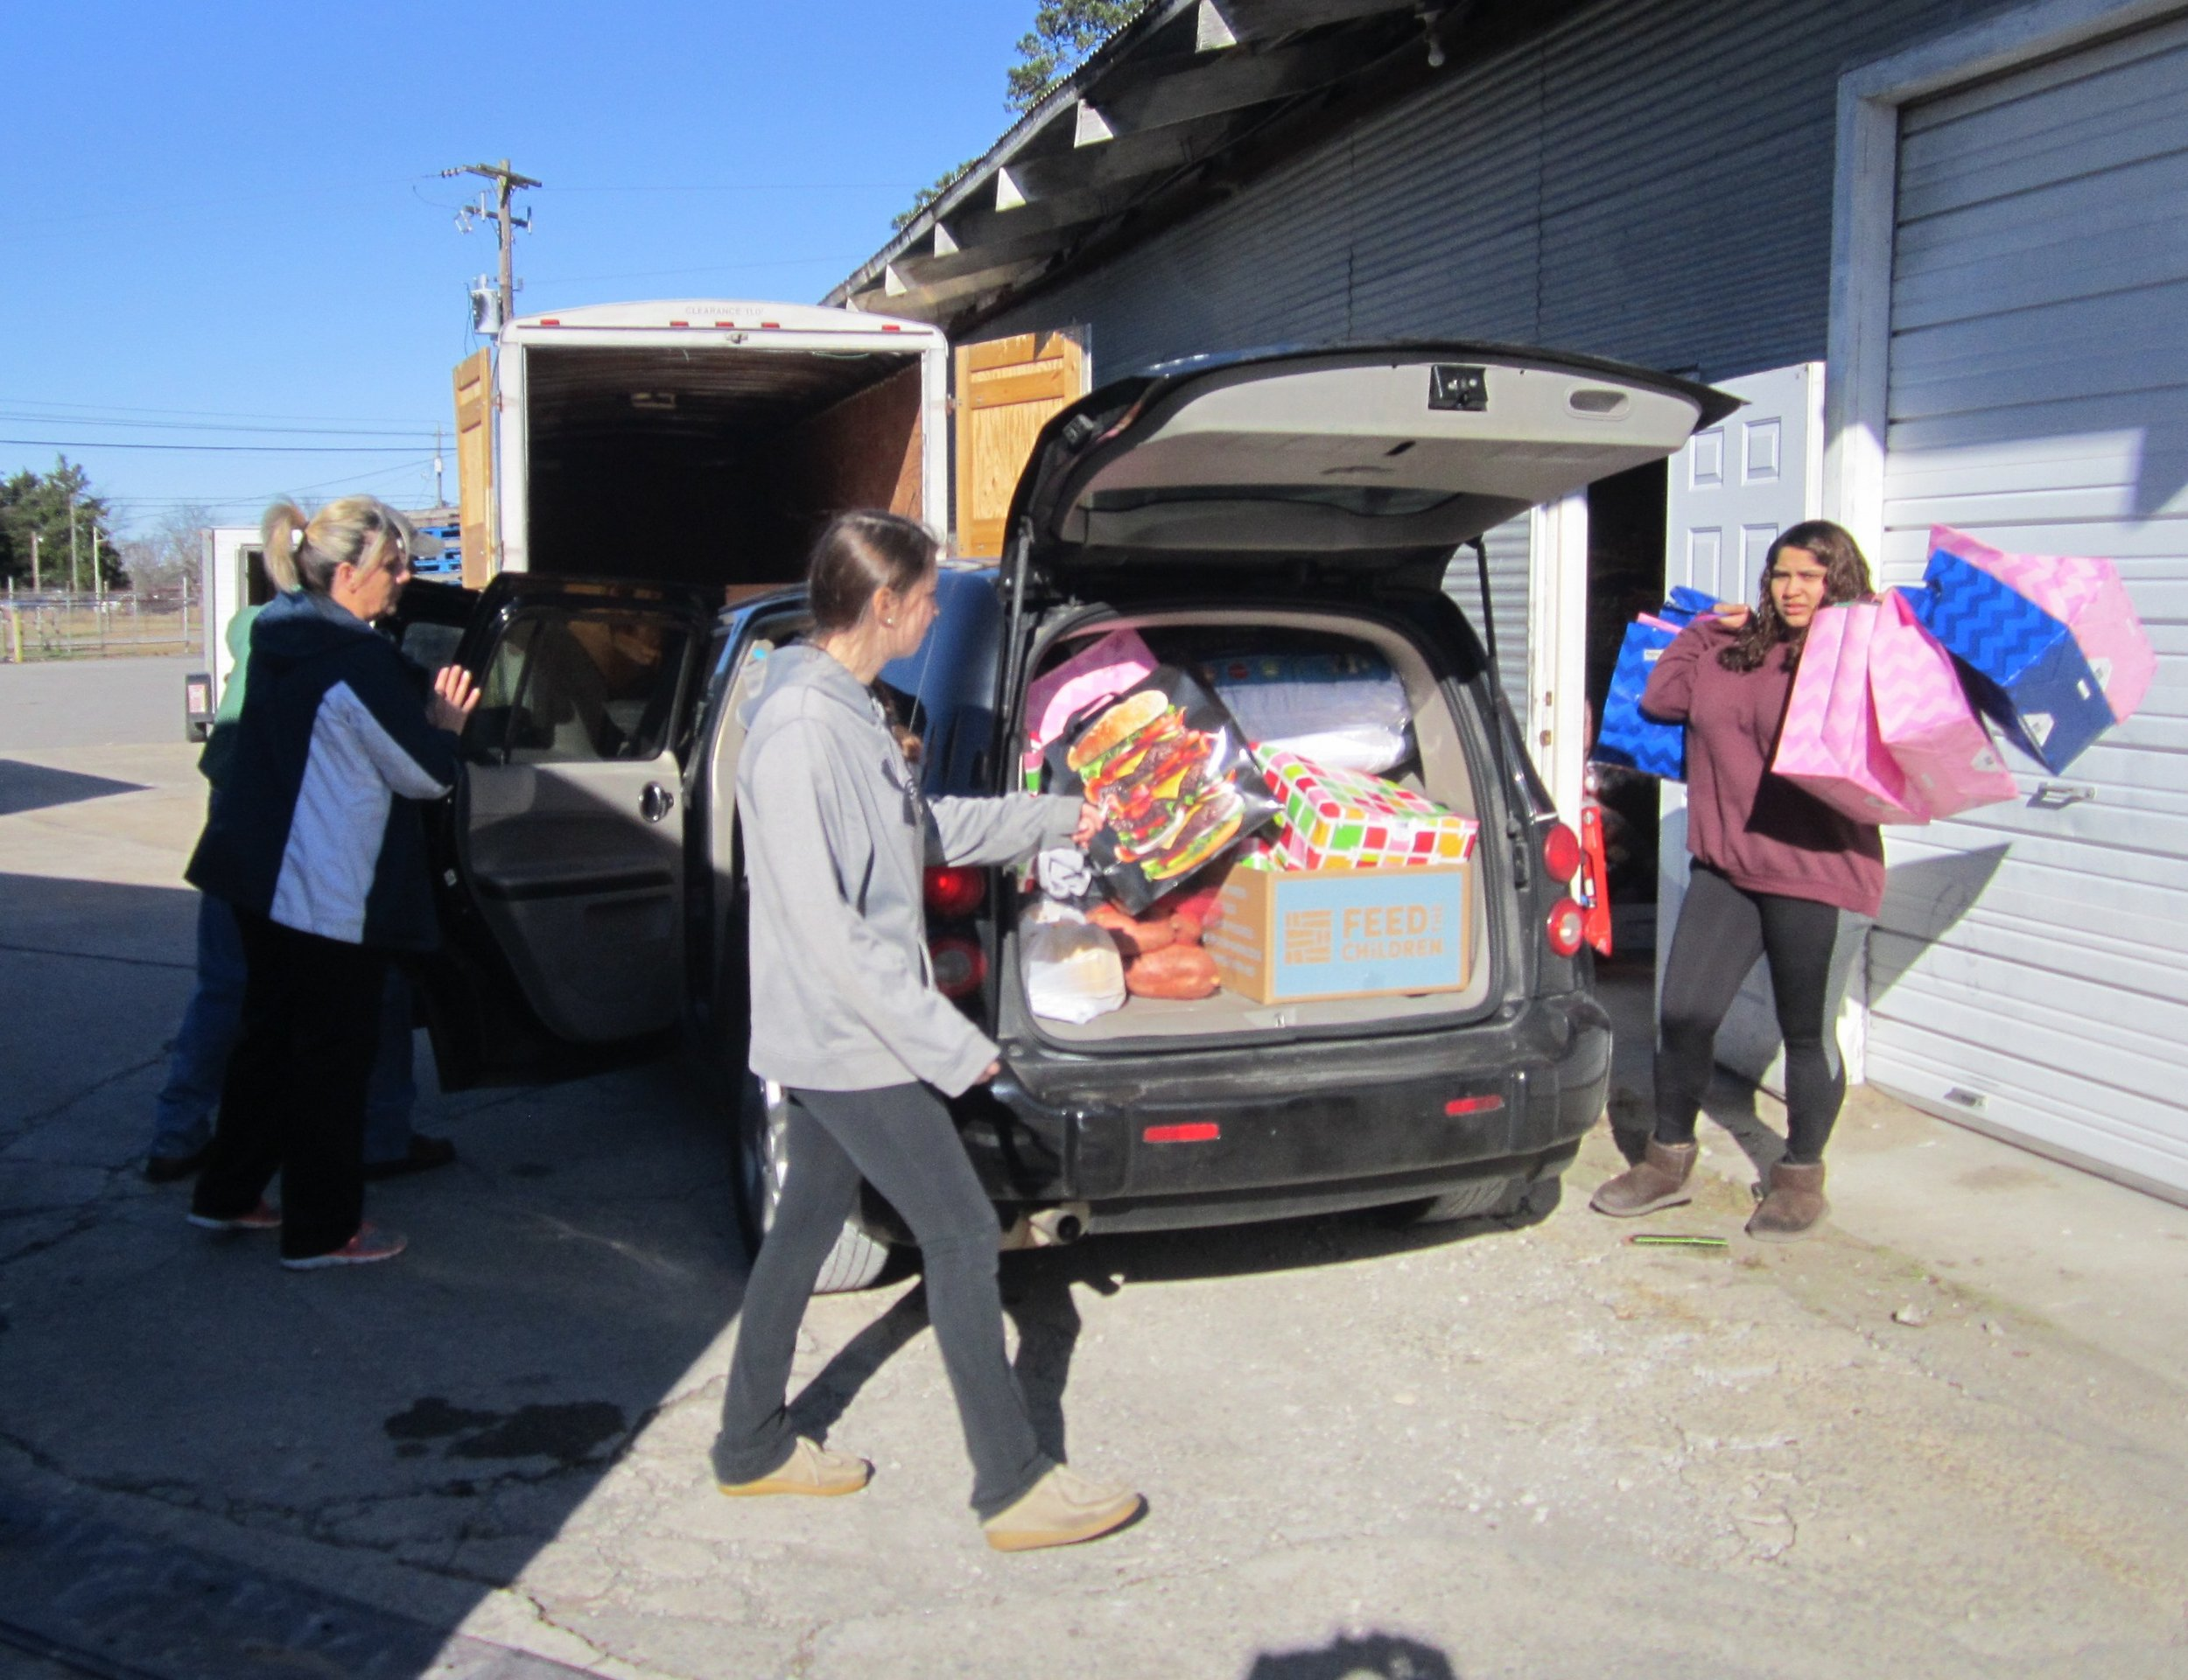 Volunteers help load cars with bags of Christmas gifts and donated groceries. Photo by Vicki Kennedy.